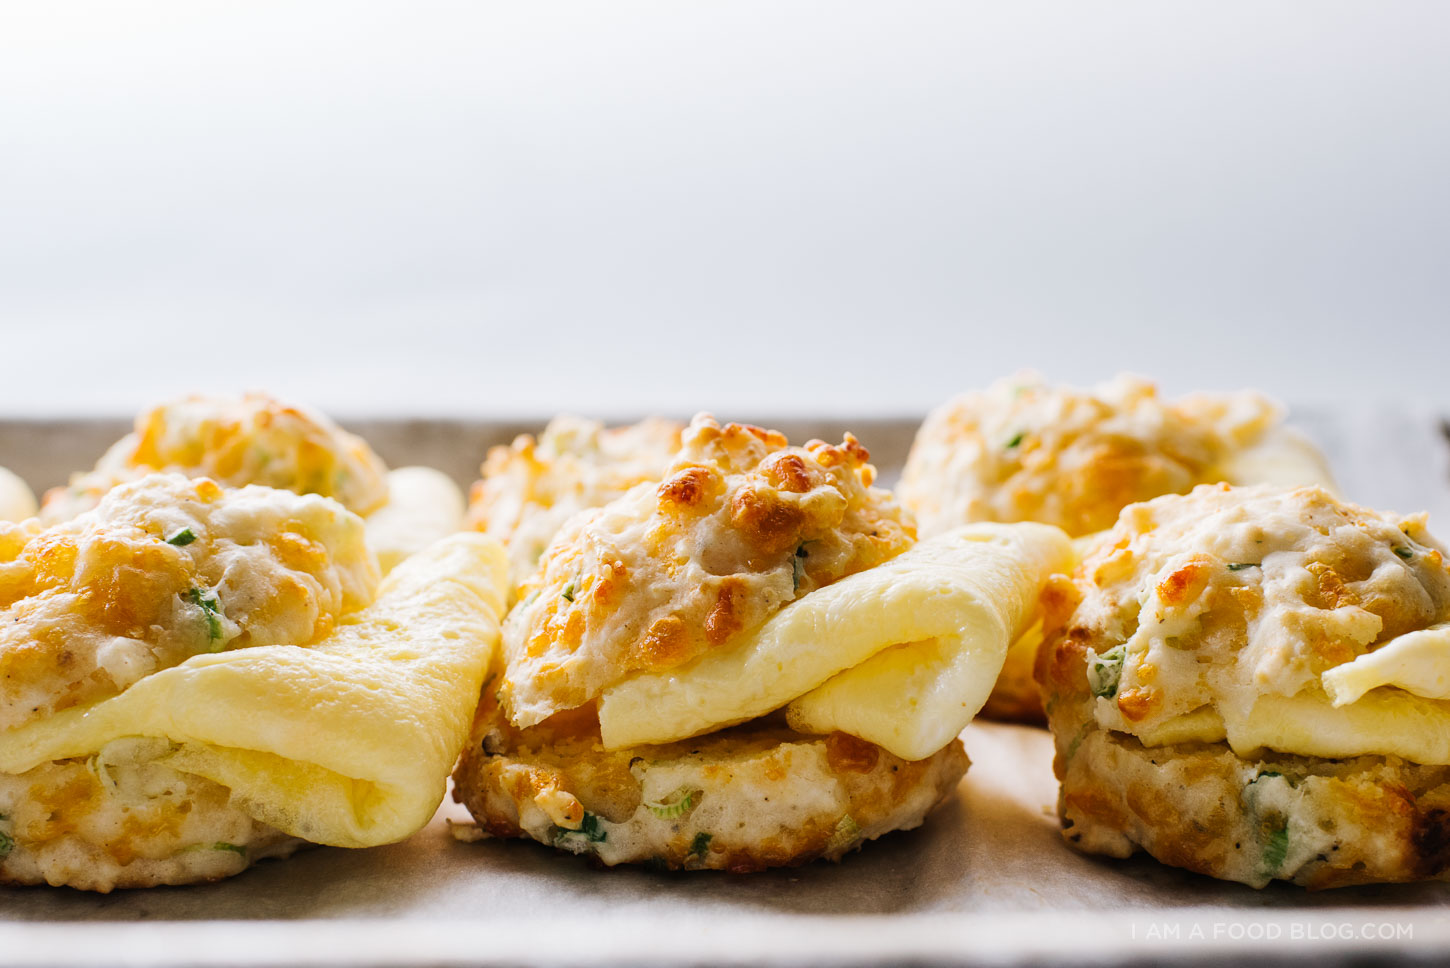 sour cream and chive egg biscuits sandwich recipe - www.iamafoodblog.com